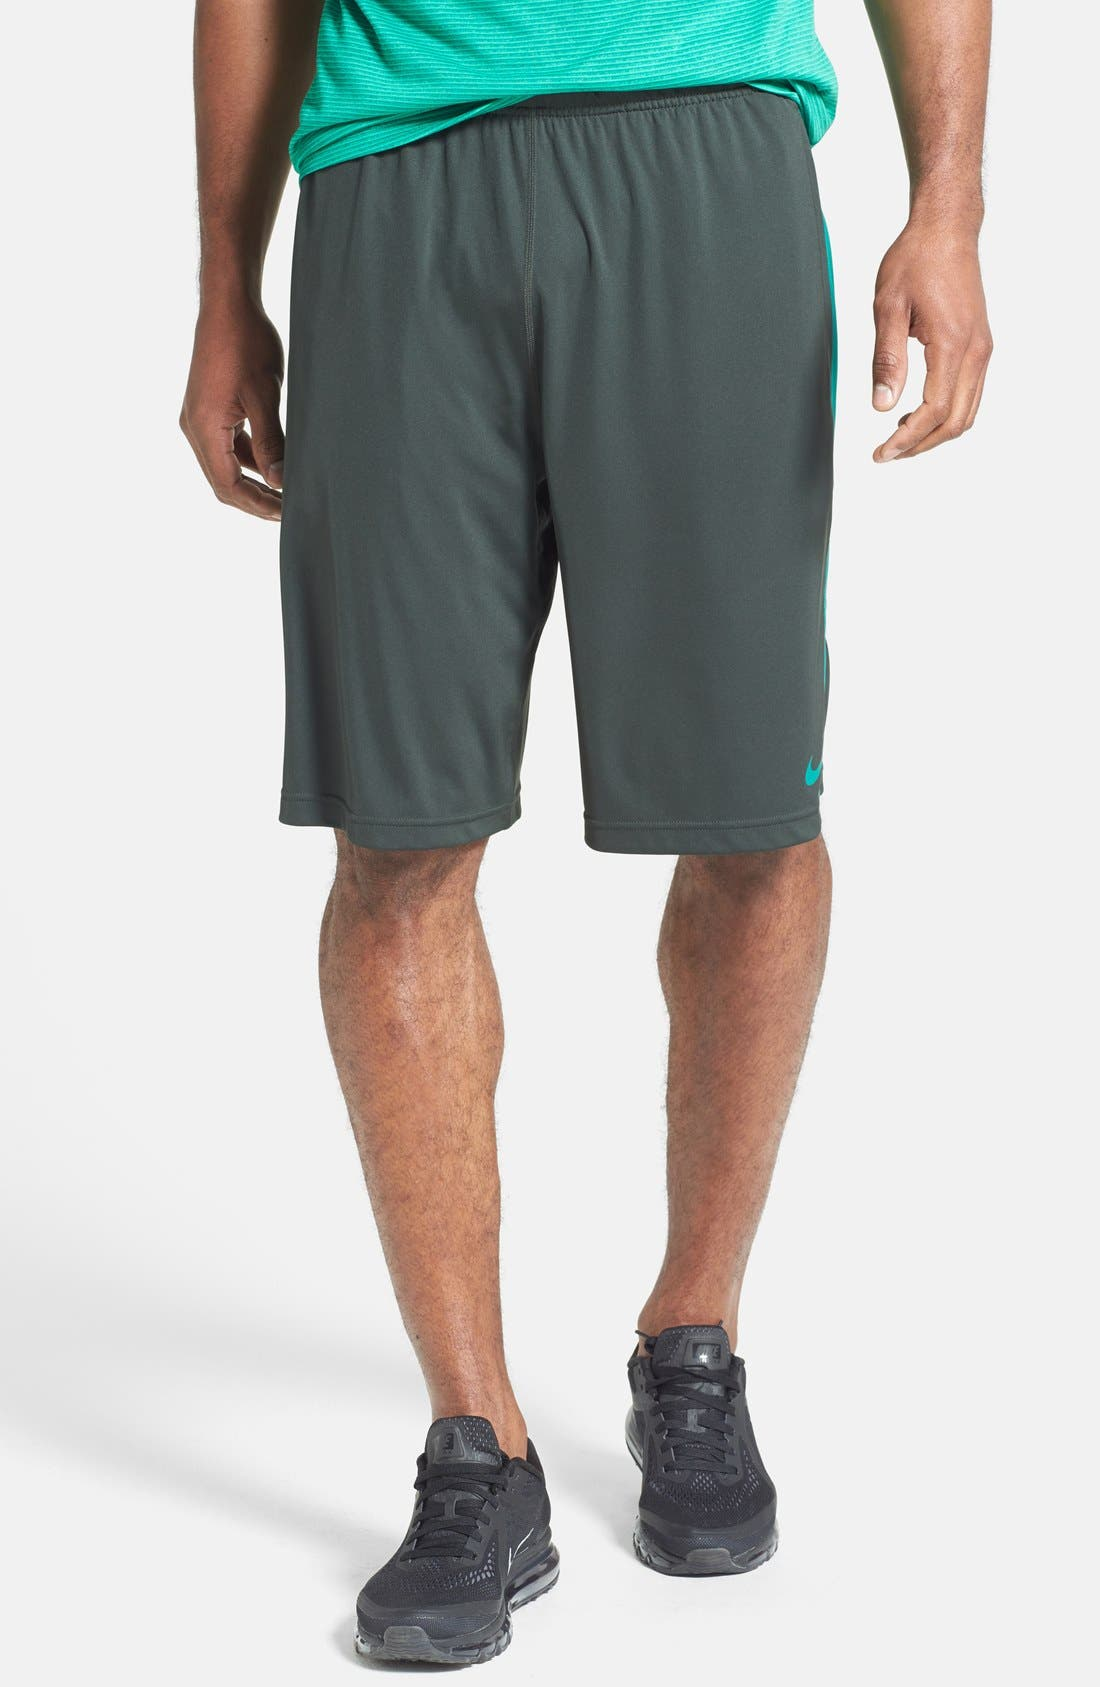 Alternate Image 1 Selected - Nike 'Fly 2.0' Dri-FIT Knit Training Shorts